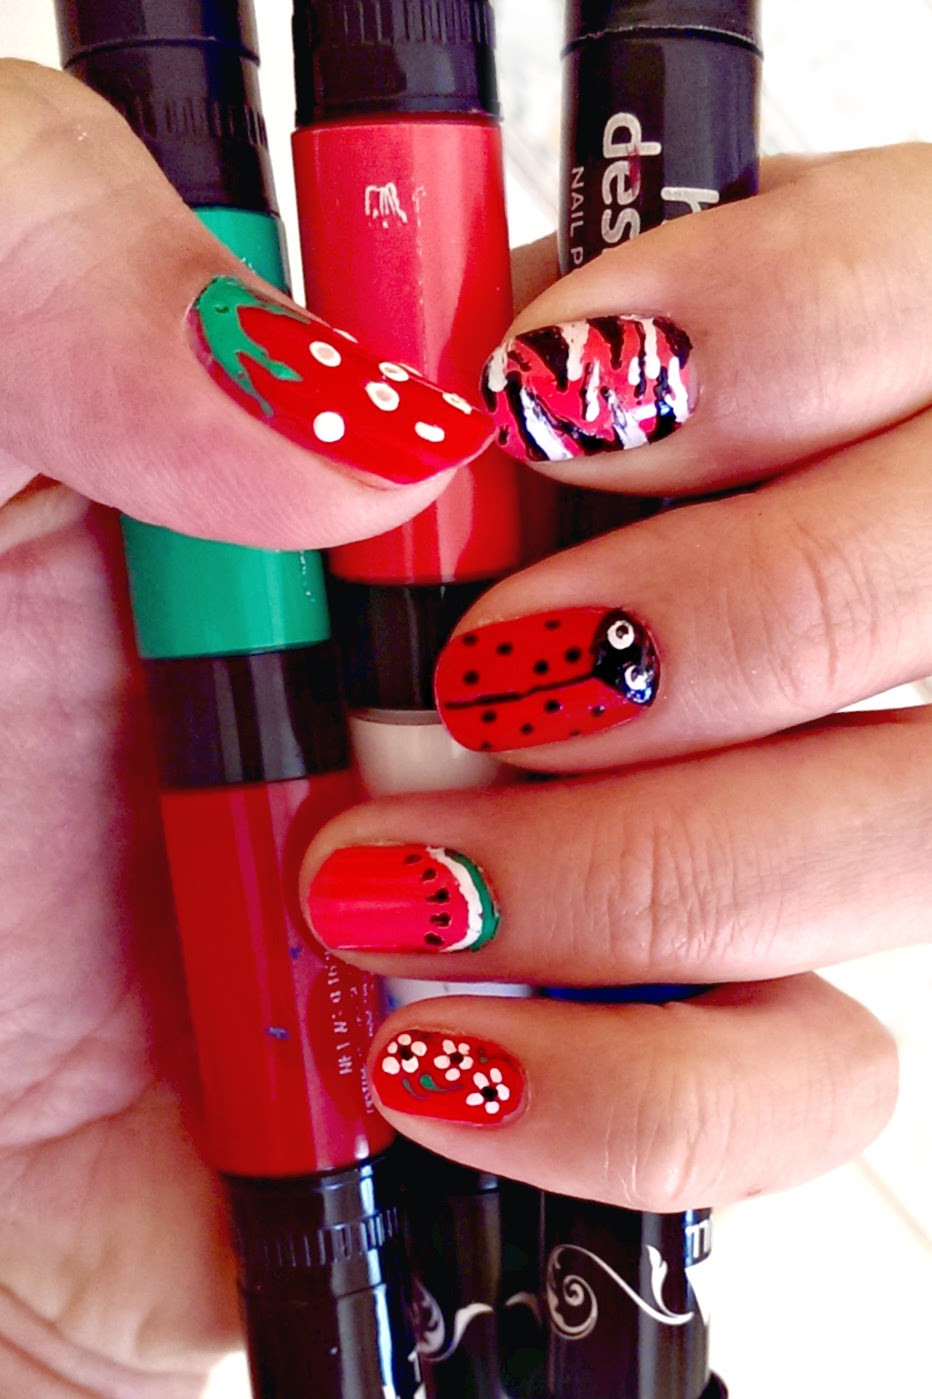 Designs nail art ideas hot designs nail art ideas prinsesfo Gallery